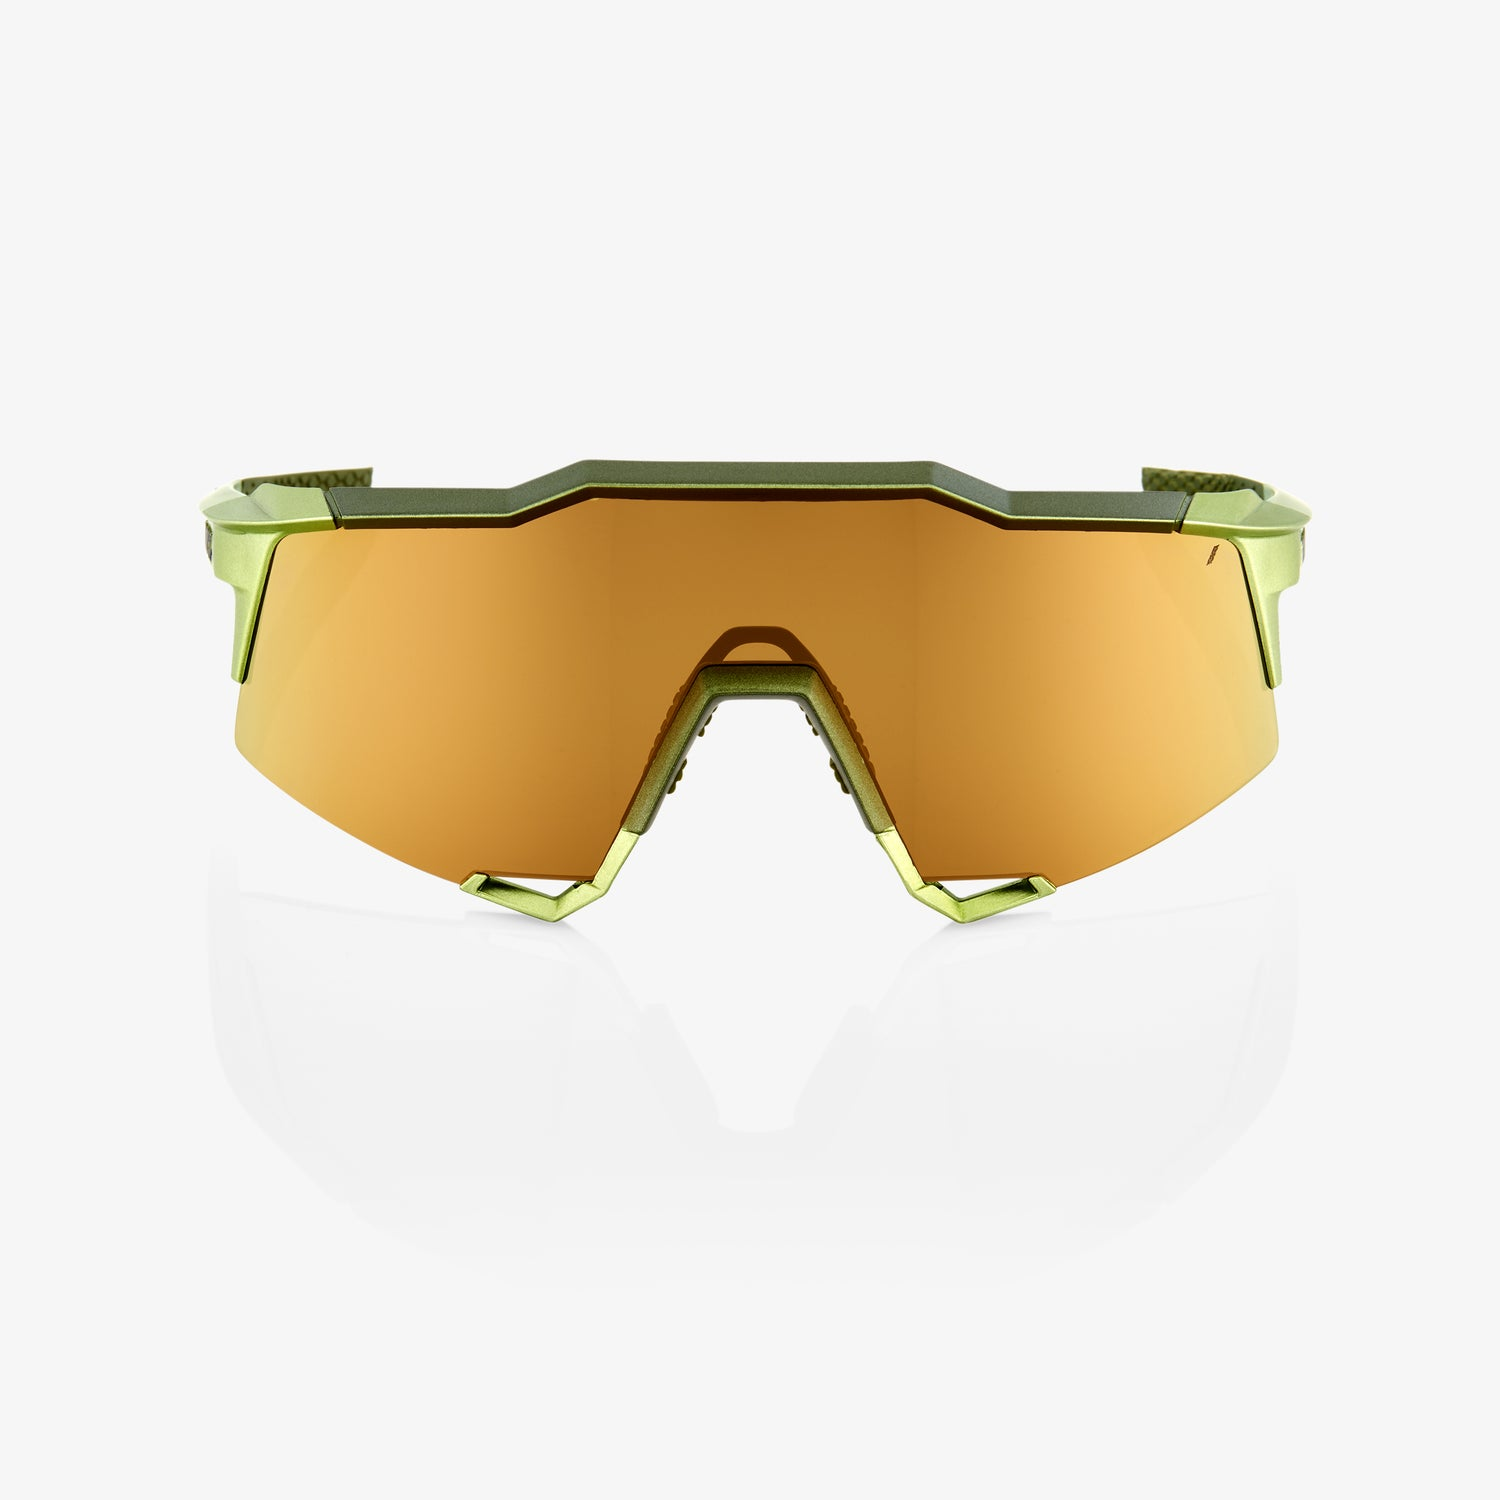 SPEEDCRAFT - Matte Metallic Viperidae - Bronze Multilayer Mirror Lens